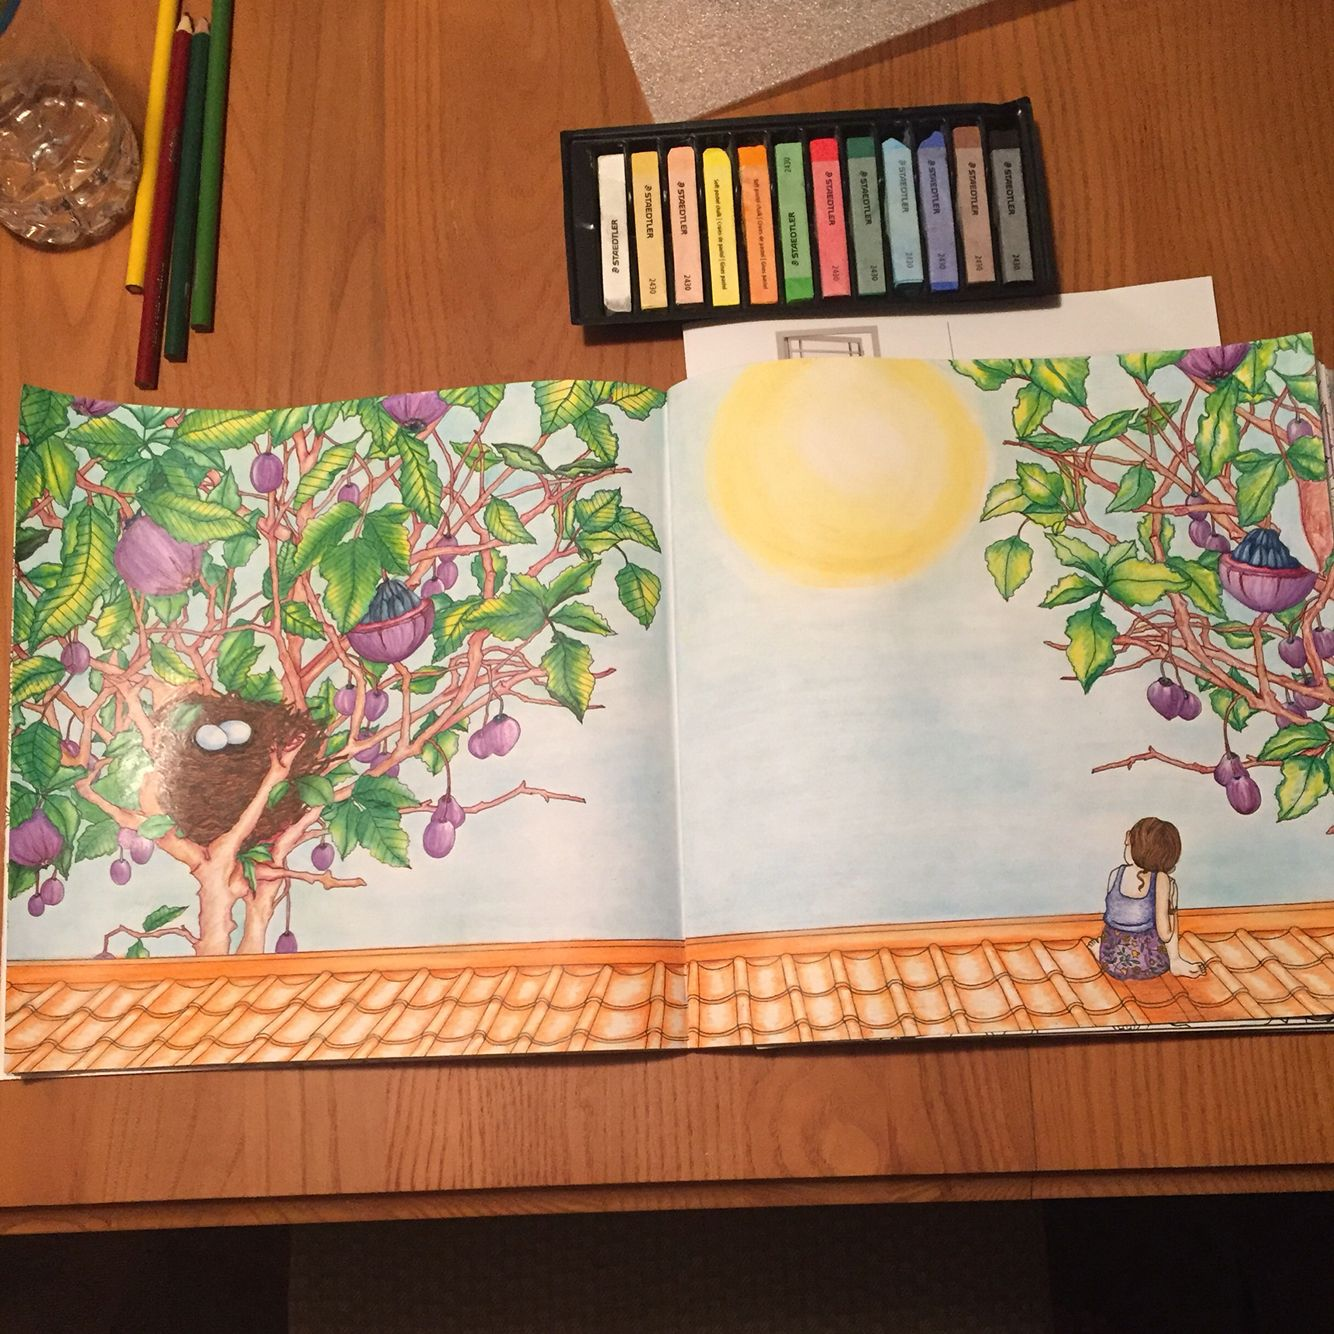 Just Finished Coloring This Double Page From The Time Garden By Daria Song Prismacolor Pencils And Chalk Pastels To Create Background